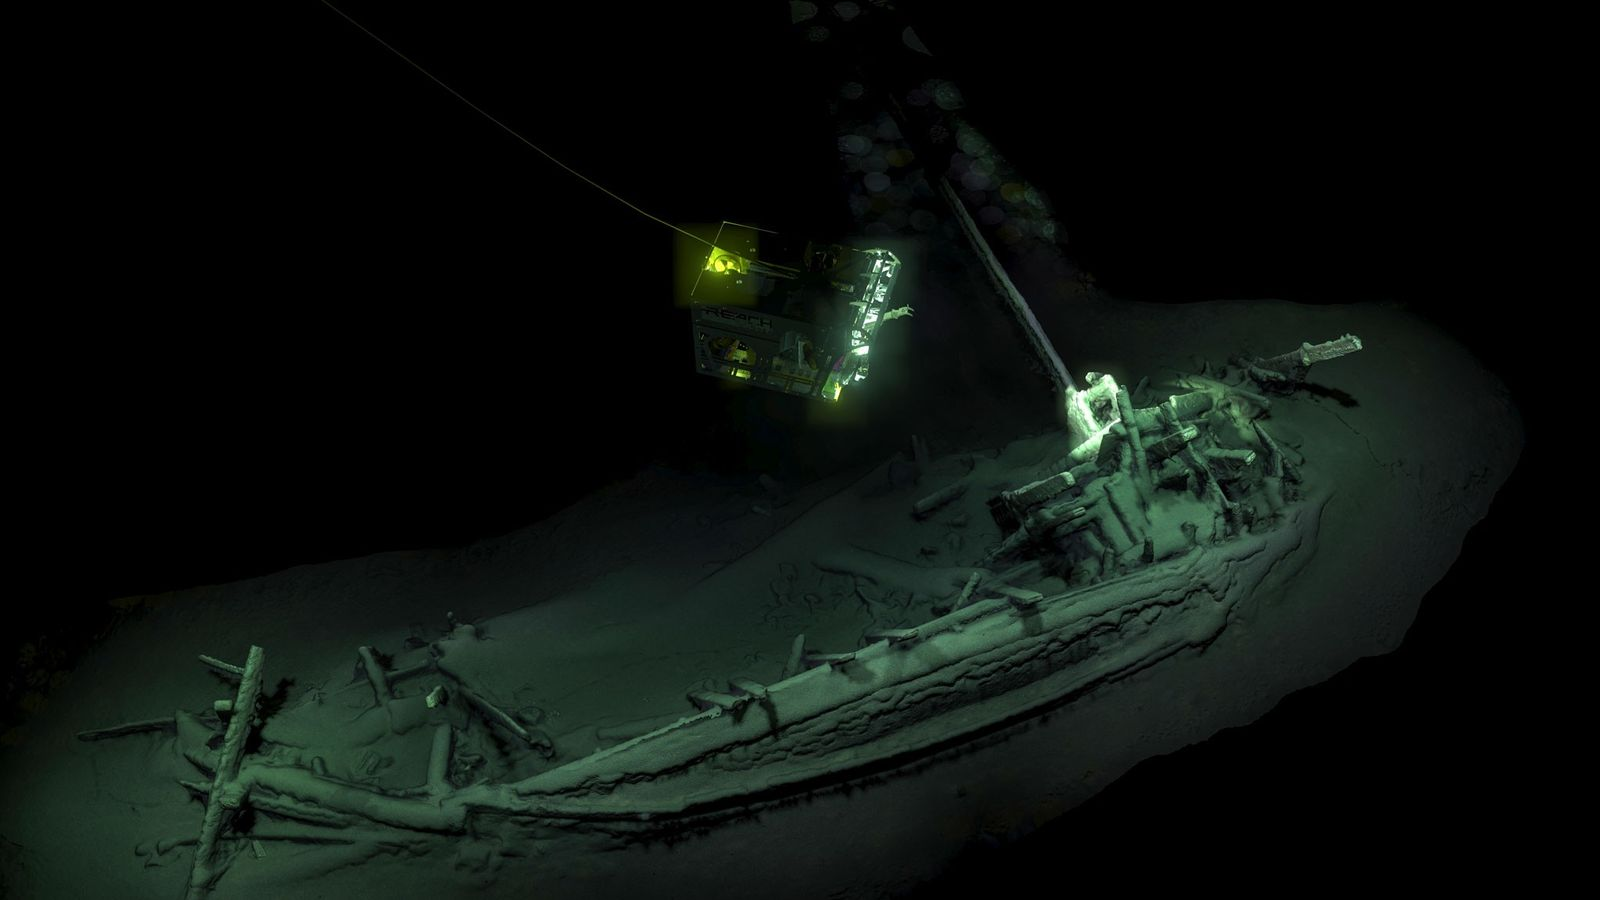 A Remote Operated Vehicle (ROV) captures images of the 2,400-year-old merchant ship, which rests some 1.2 ...